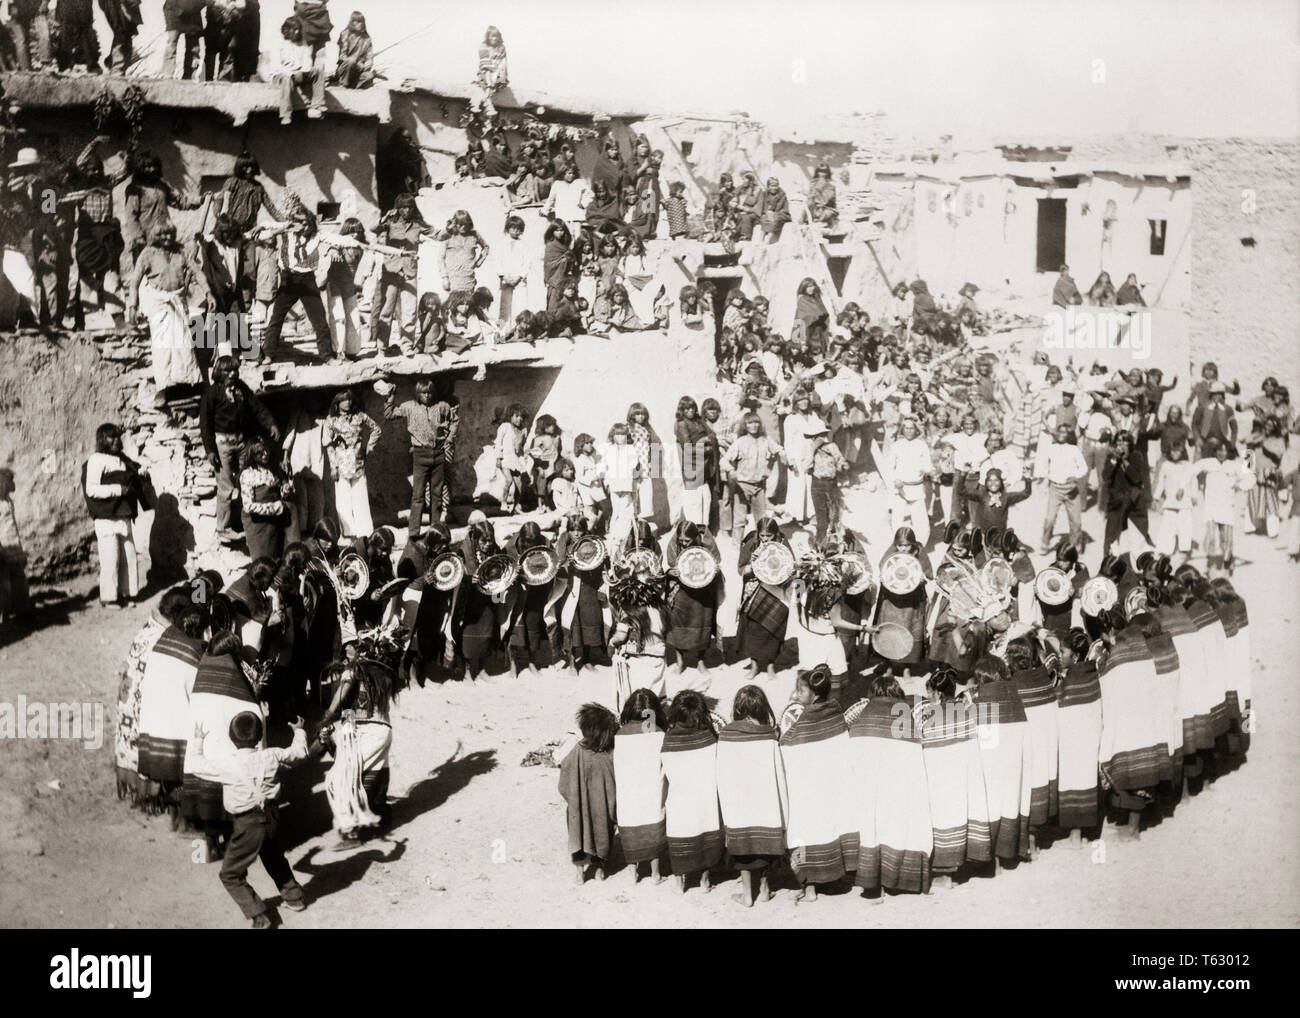 1890s NATIVE AMERICAN HOPI PUEBLO INDIAN WOMEN PERFORMING CIRCLE DANCE WITH BASKETS  - q73399 CPC001 HARS ENTERTAINMENT SPIRITUALITY CEREMONY B&W PERFORMING HIGH ANGLE ADVENTURE EXCITEMENT TRADITION CULTURE BASKETS NATIVE AMERICAN PUEBLO NATIVE AMERICANS BLACK AND WHITE HOPI OLD FASHIONED - Stock Image